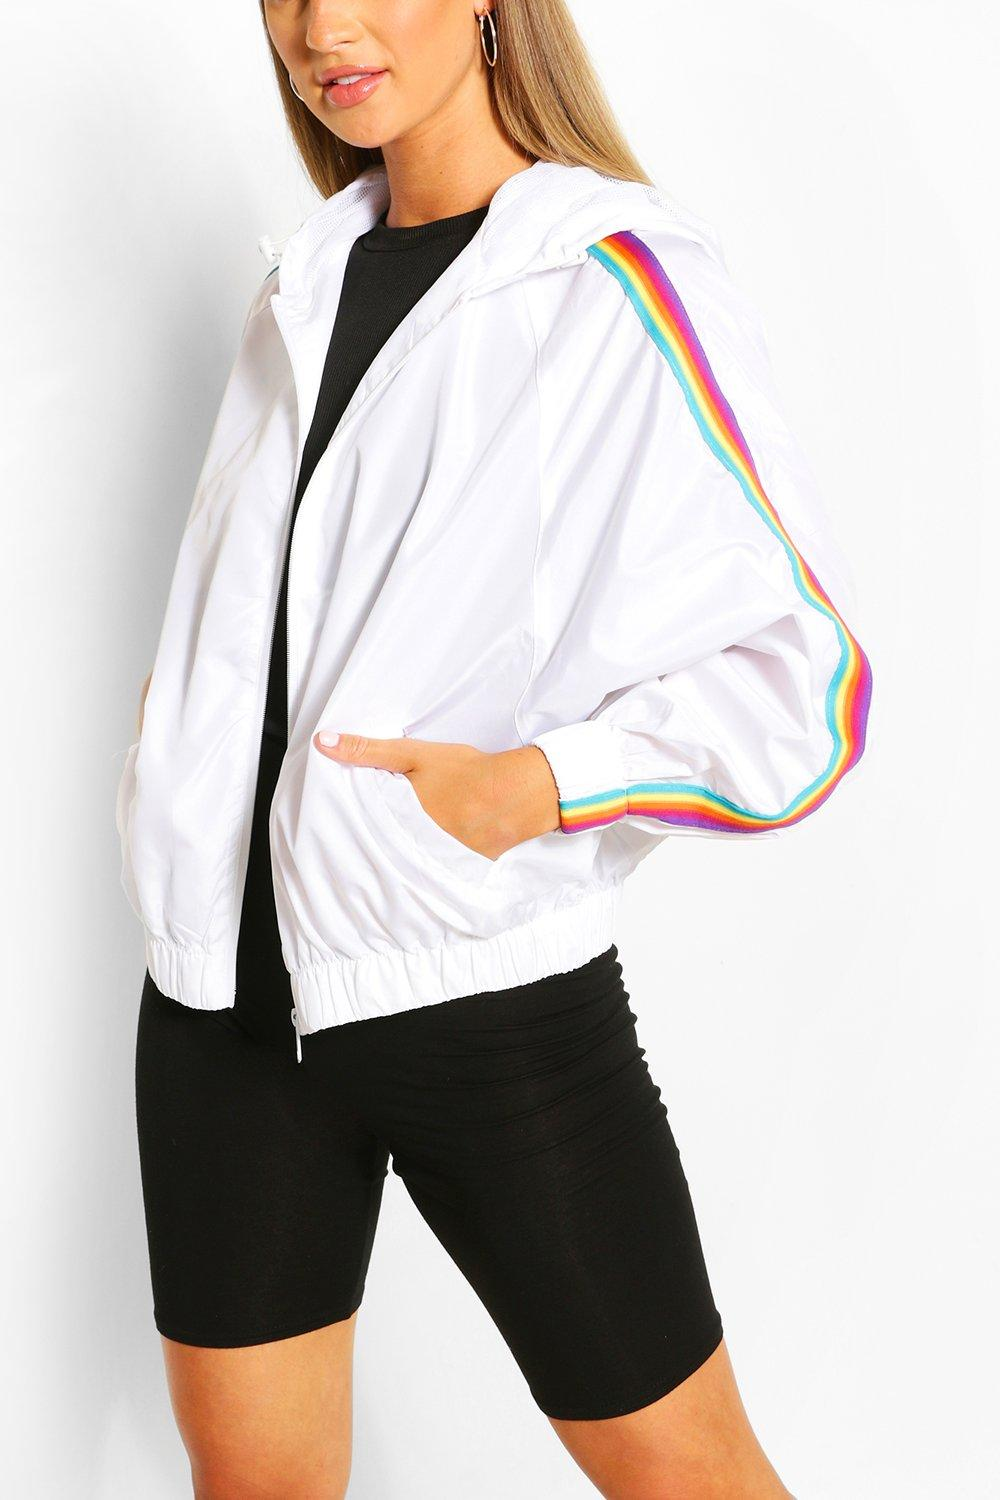 1980s Clothing, Fashion | 80s Style Clothes Womens Hooded Rainbow Stripe Windbreaker - White - 10 $16.00 AT vintagedancer.com